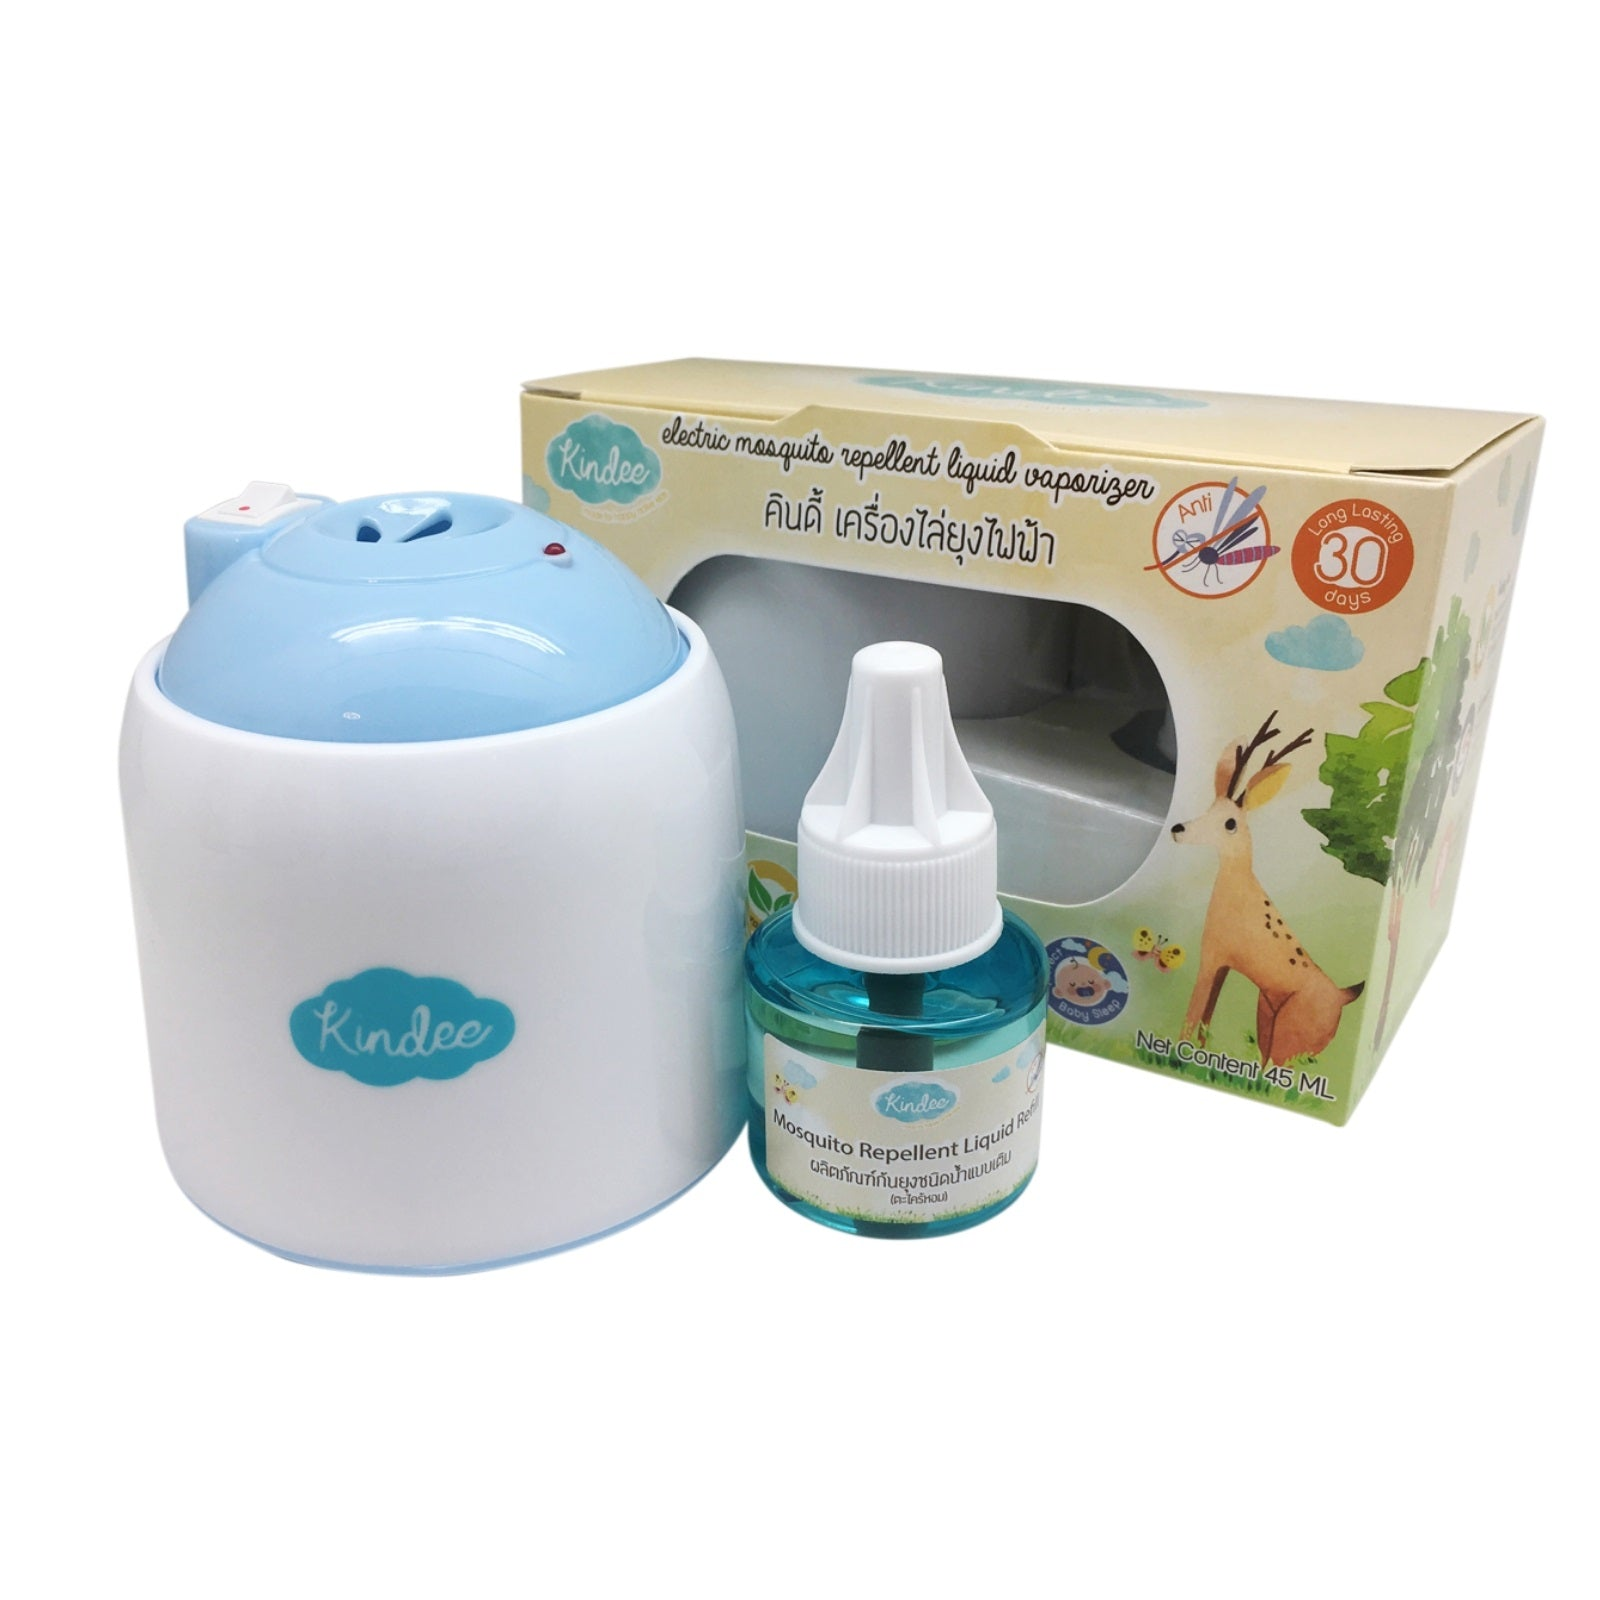 Kindee Electric Mosquito Repellent Liquid Vapourizer